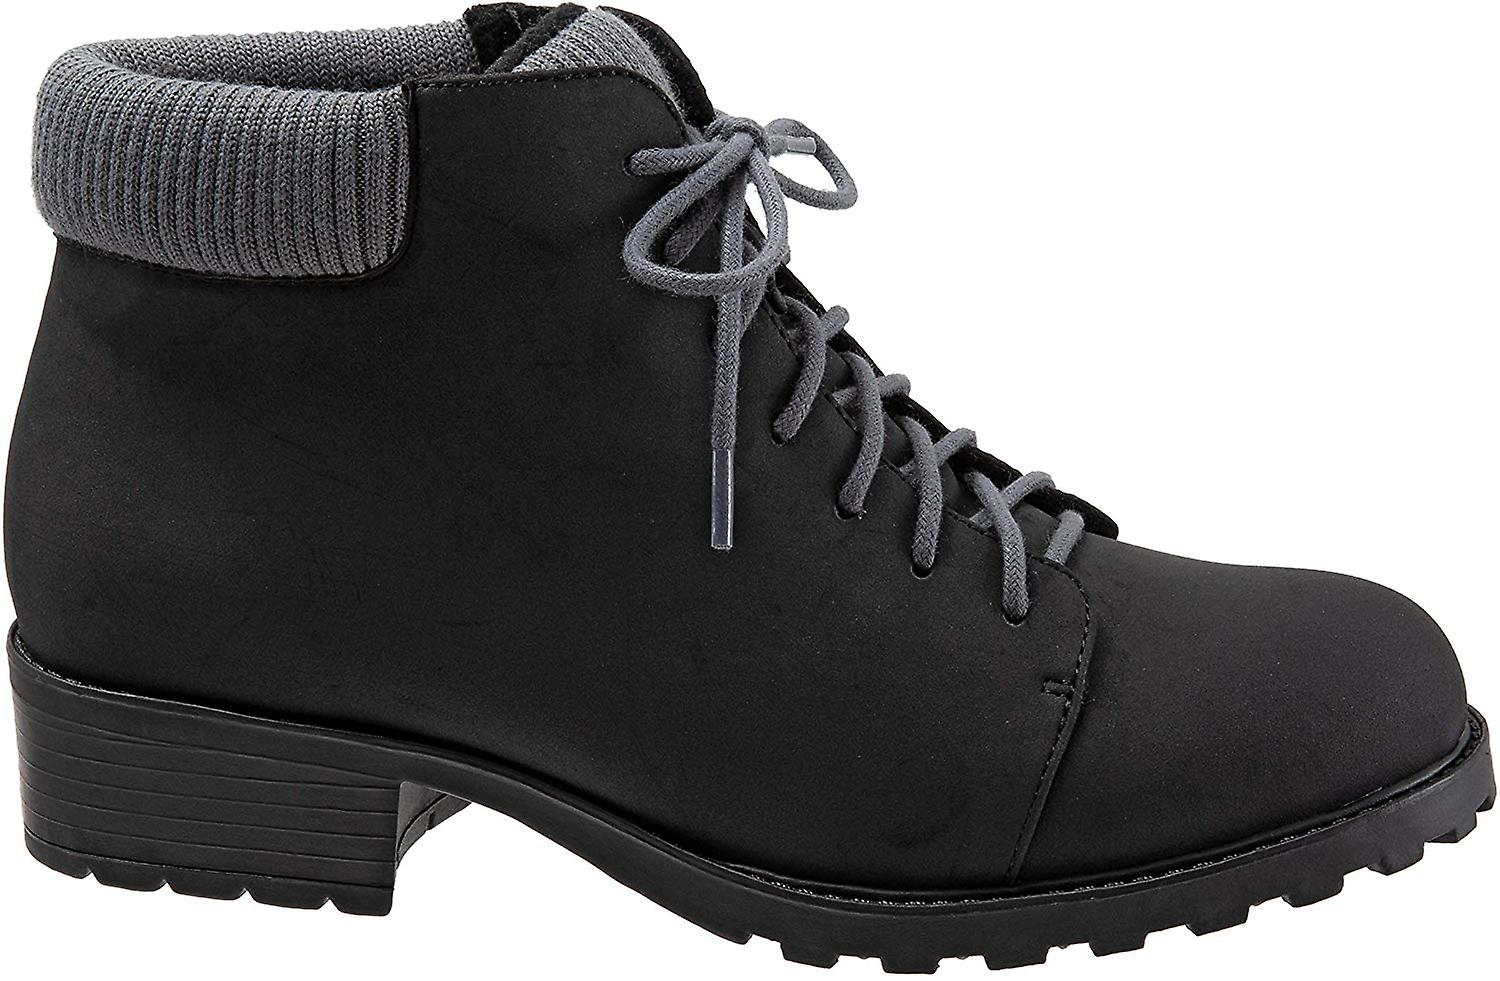 Trotters Women's Becky Low Ankle Boot